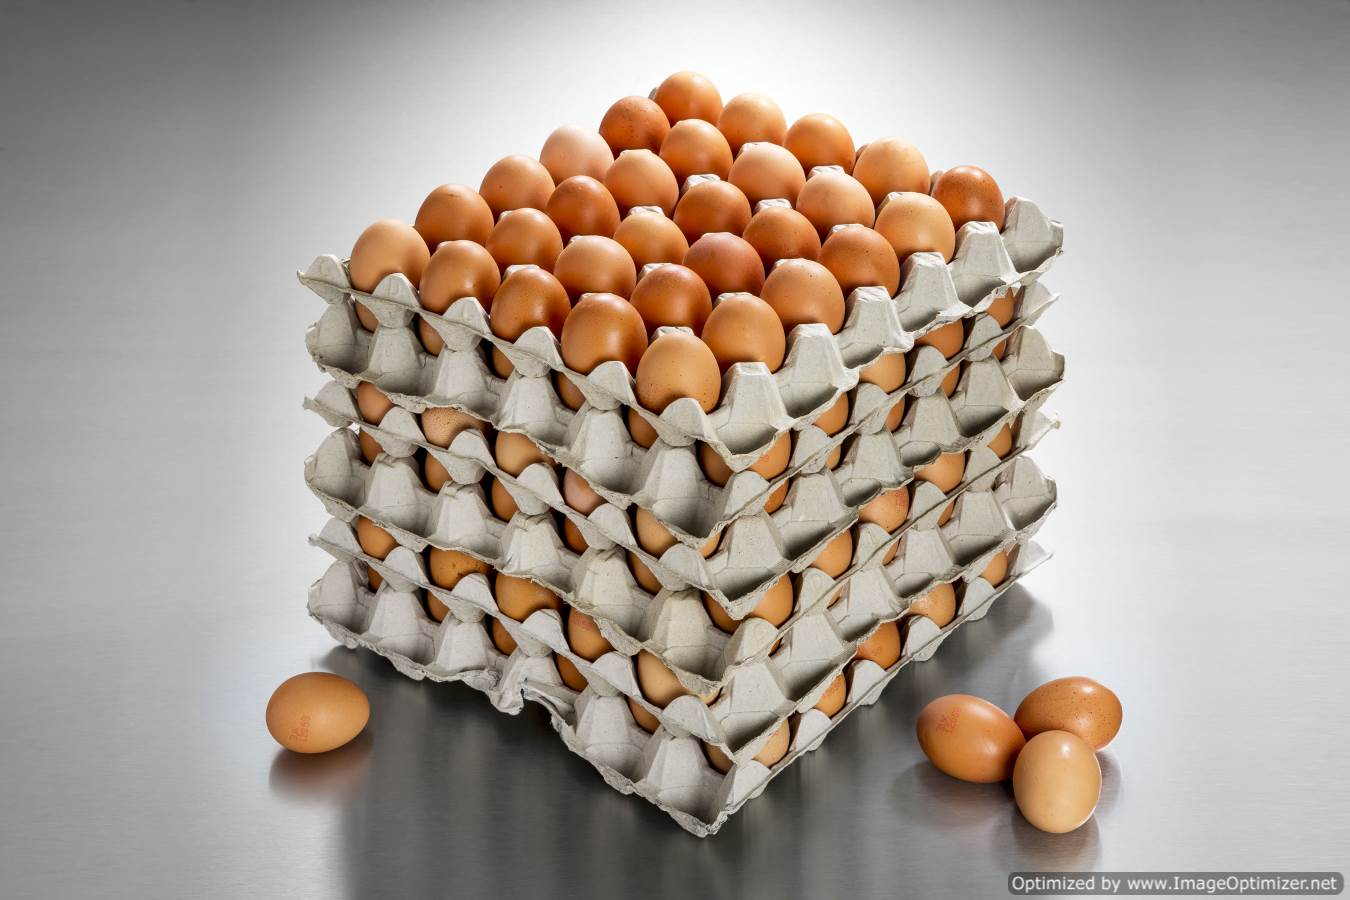 Eggs Medium (Full Box - 30 Dozen/360 Eggs)